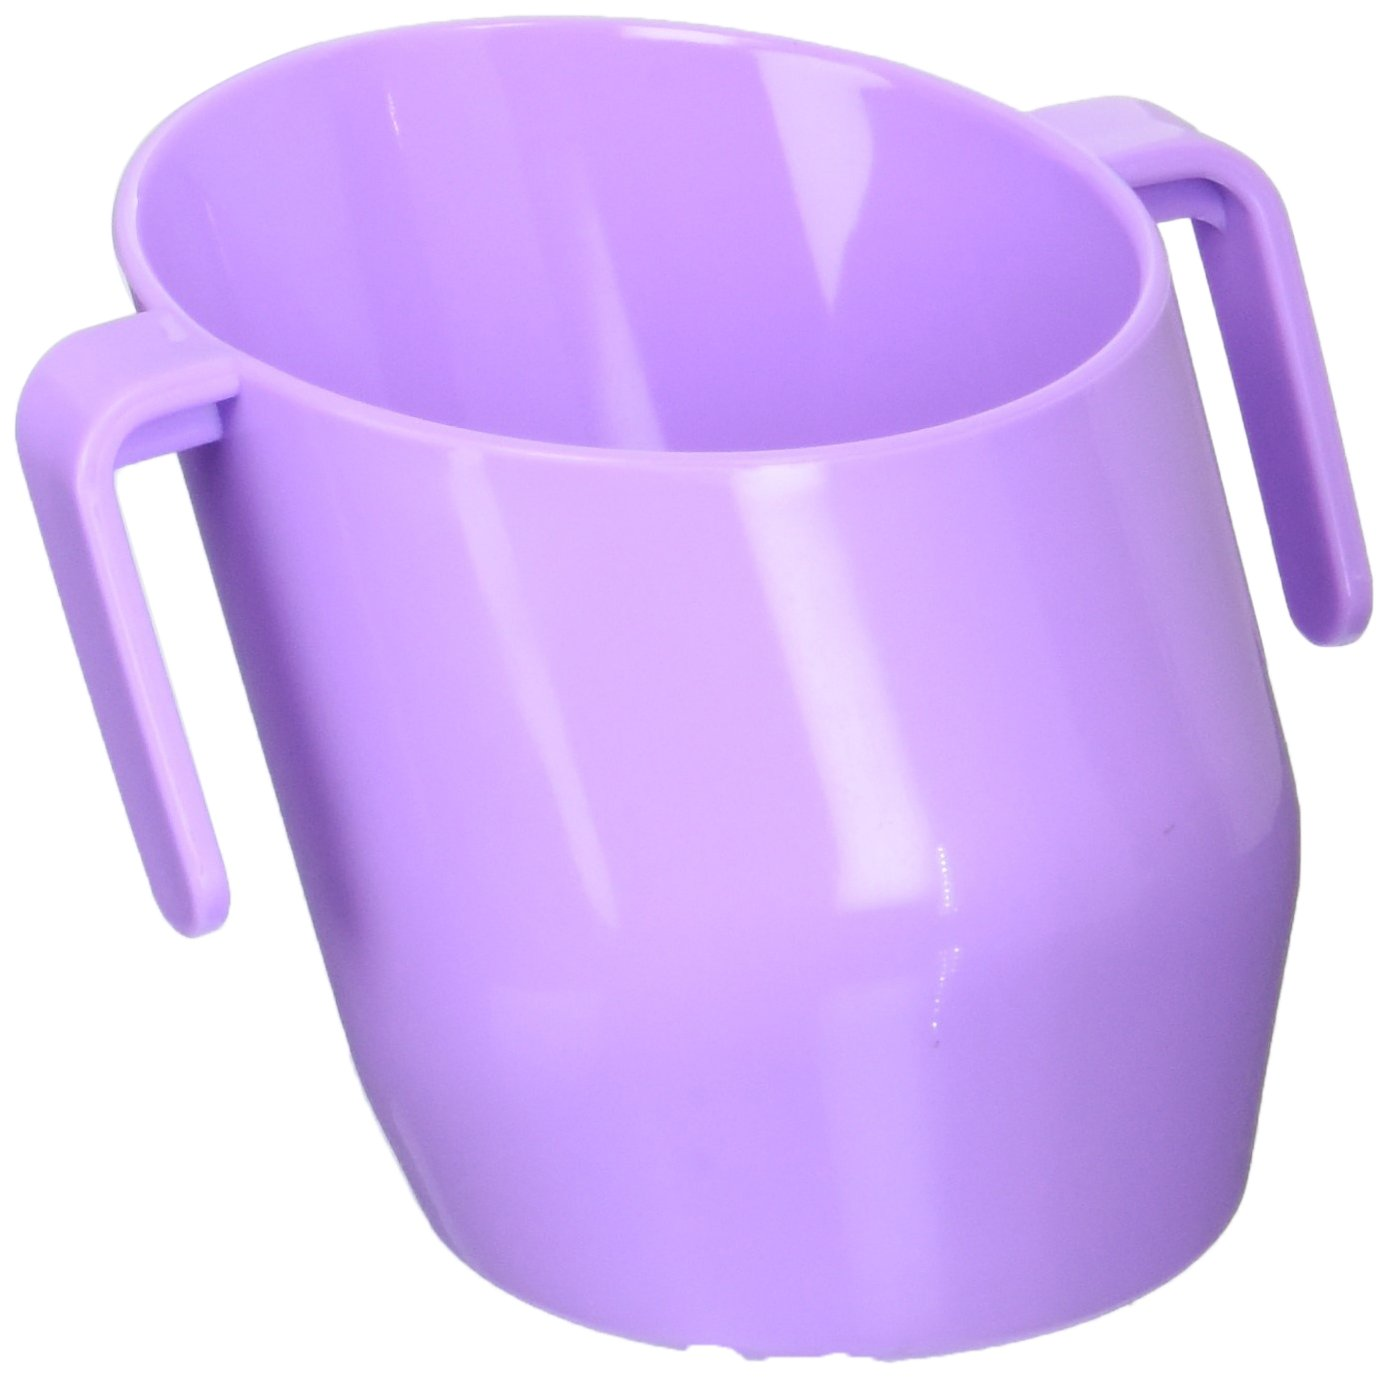 Popular standard Max 73% OFF Doidy Cup - Lilac color Dispatched From USA